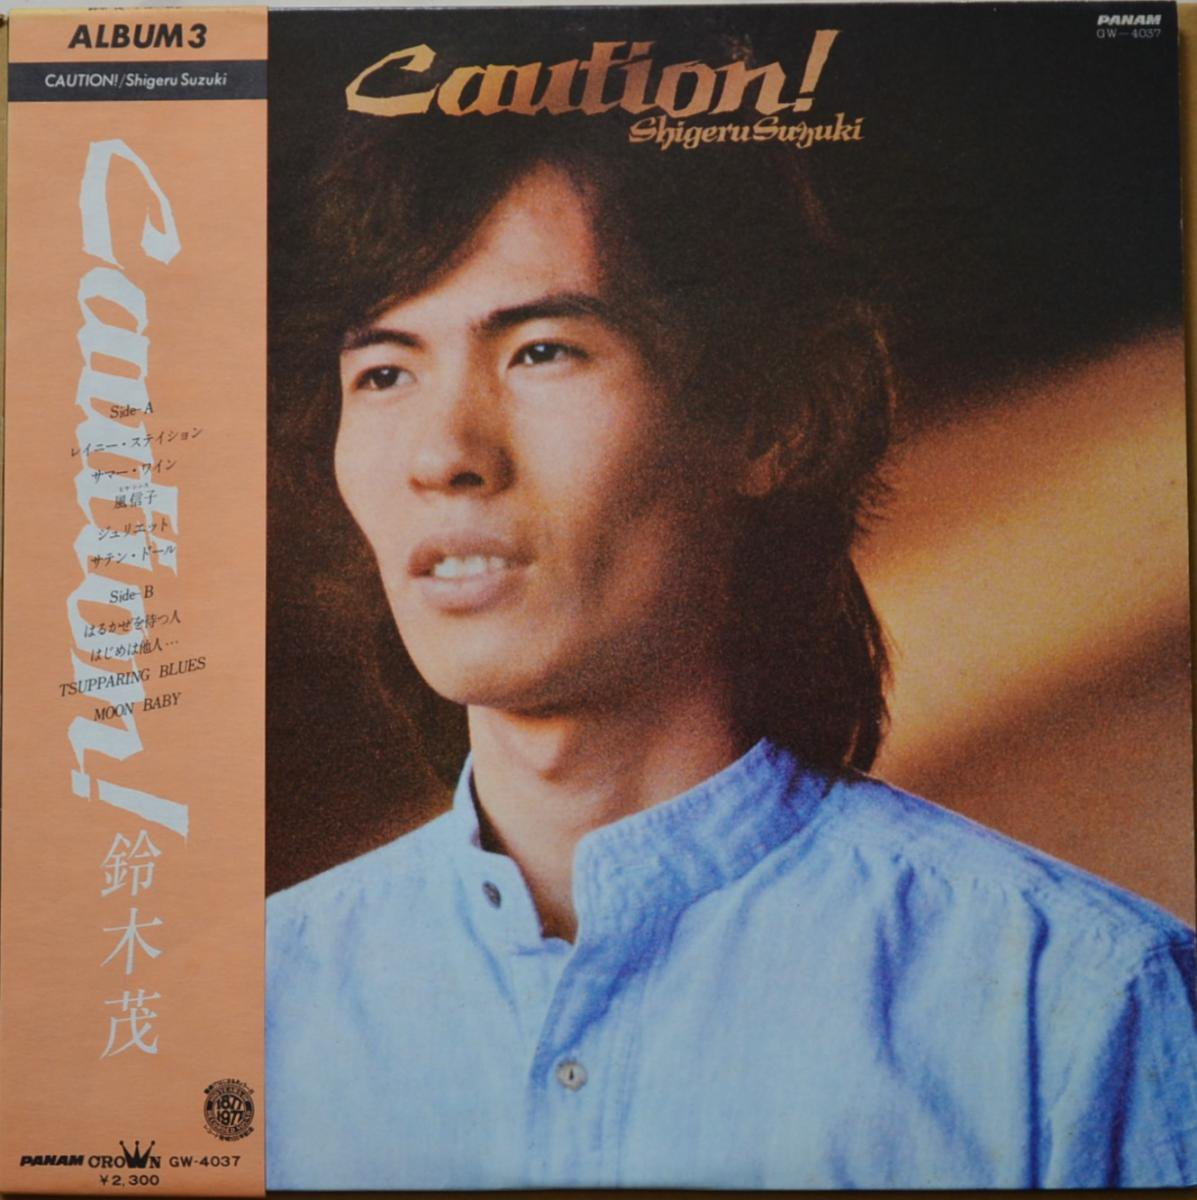 鈴木茂 SHIGERU SUZUKI / CAUTION! - ALBUM 3 (LP)